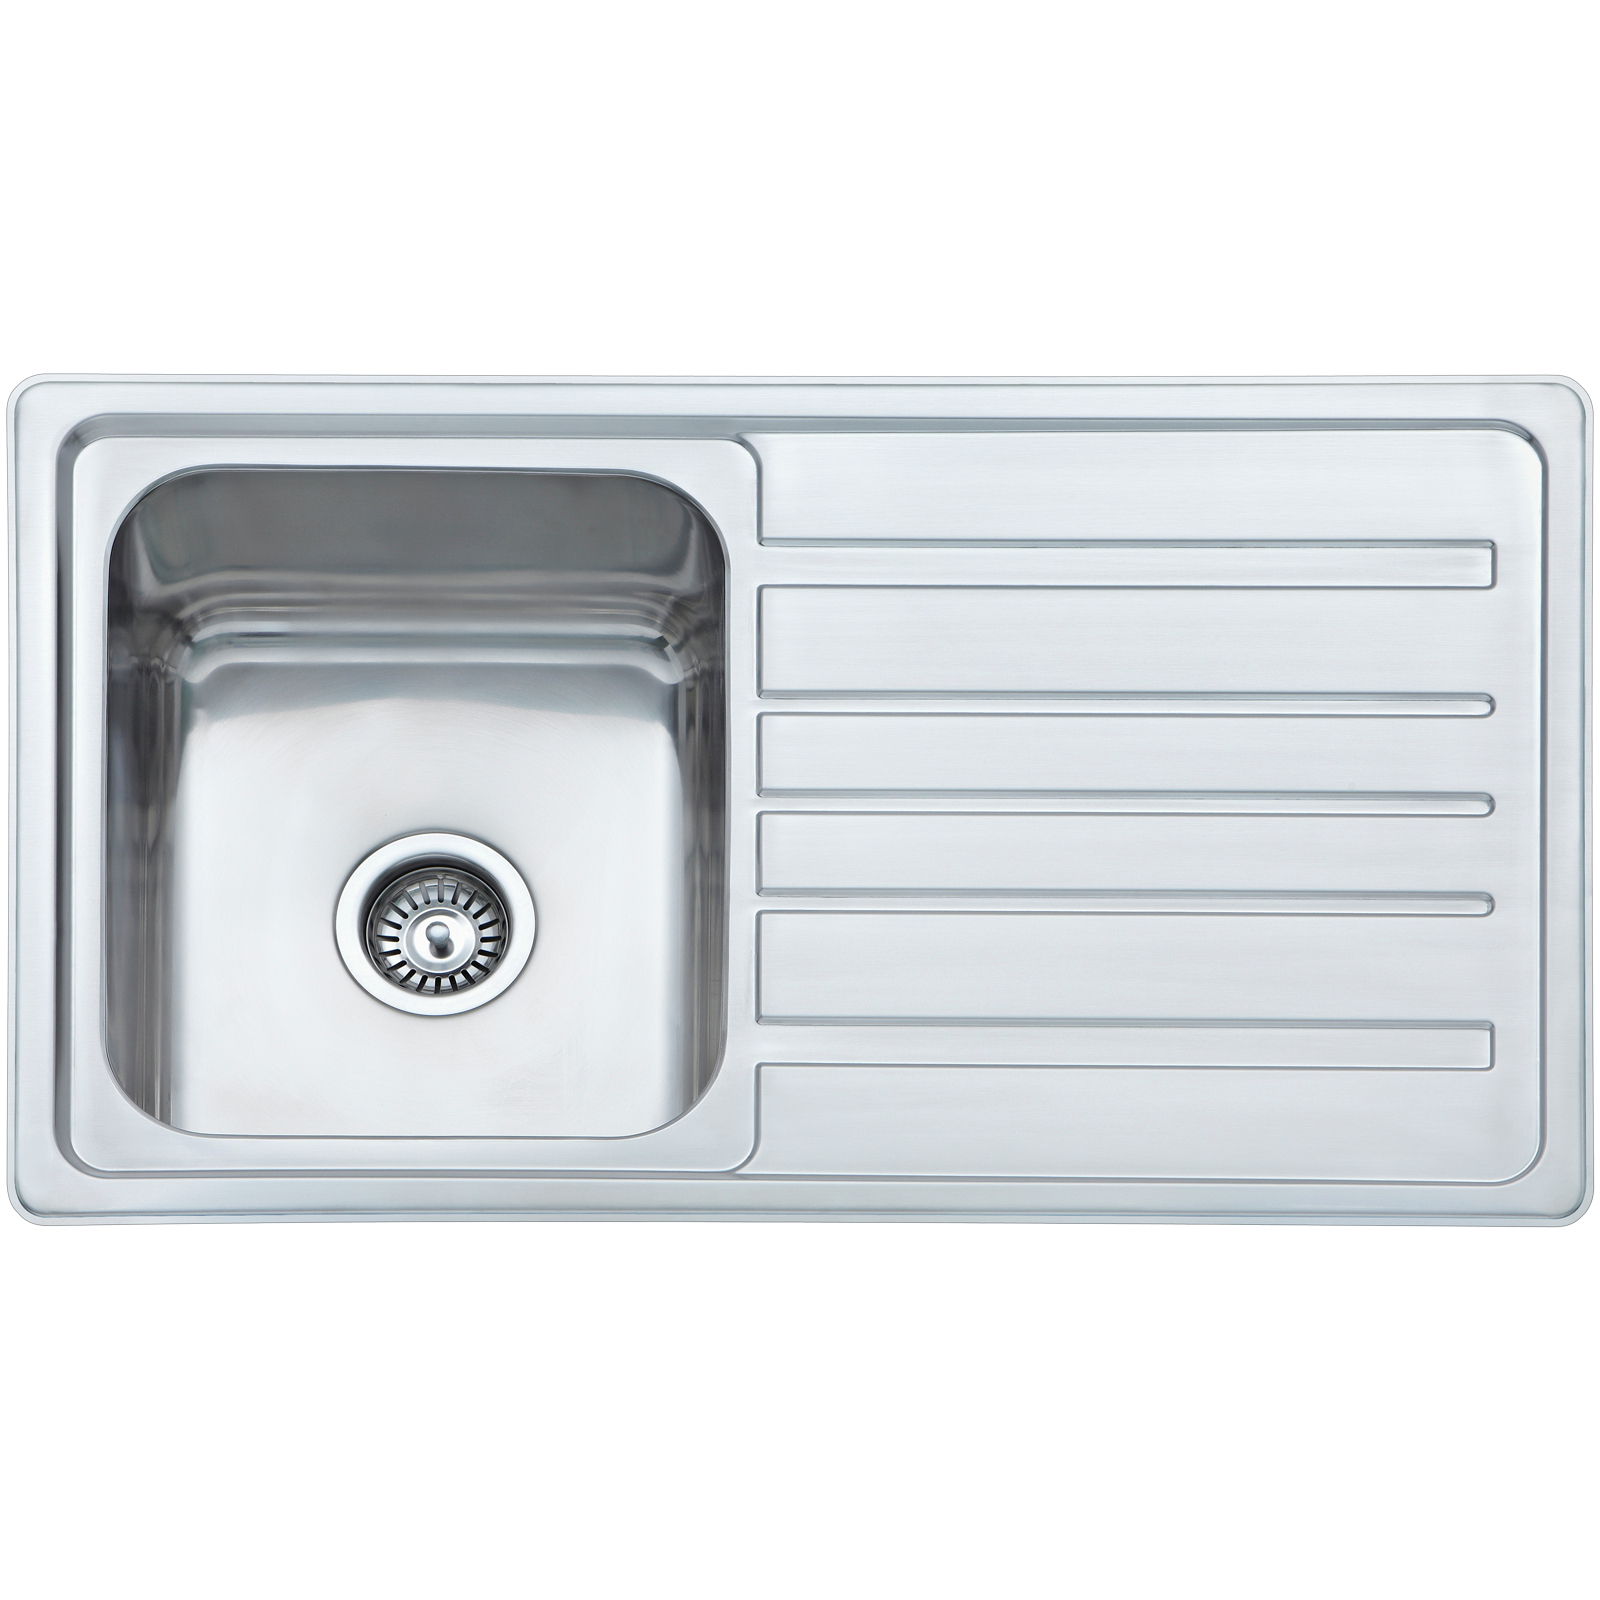 Mondella Stainless Steel 1 Bowl Concerto Sink With Drainer